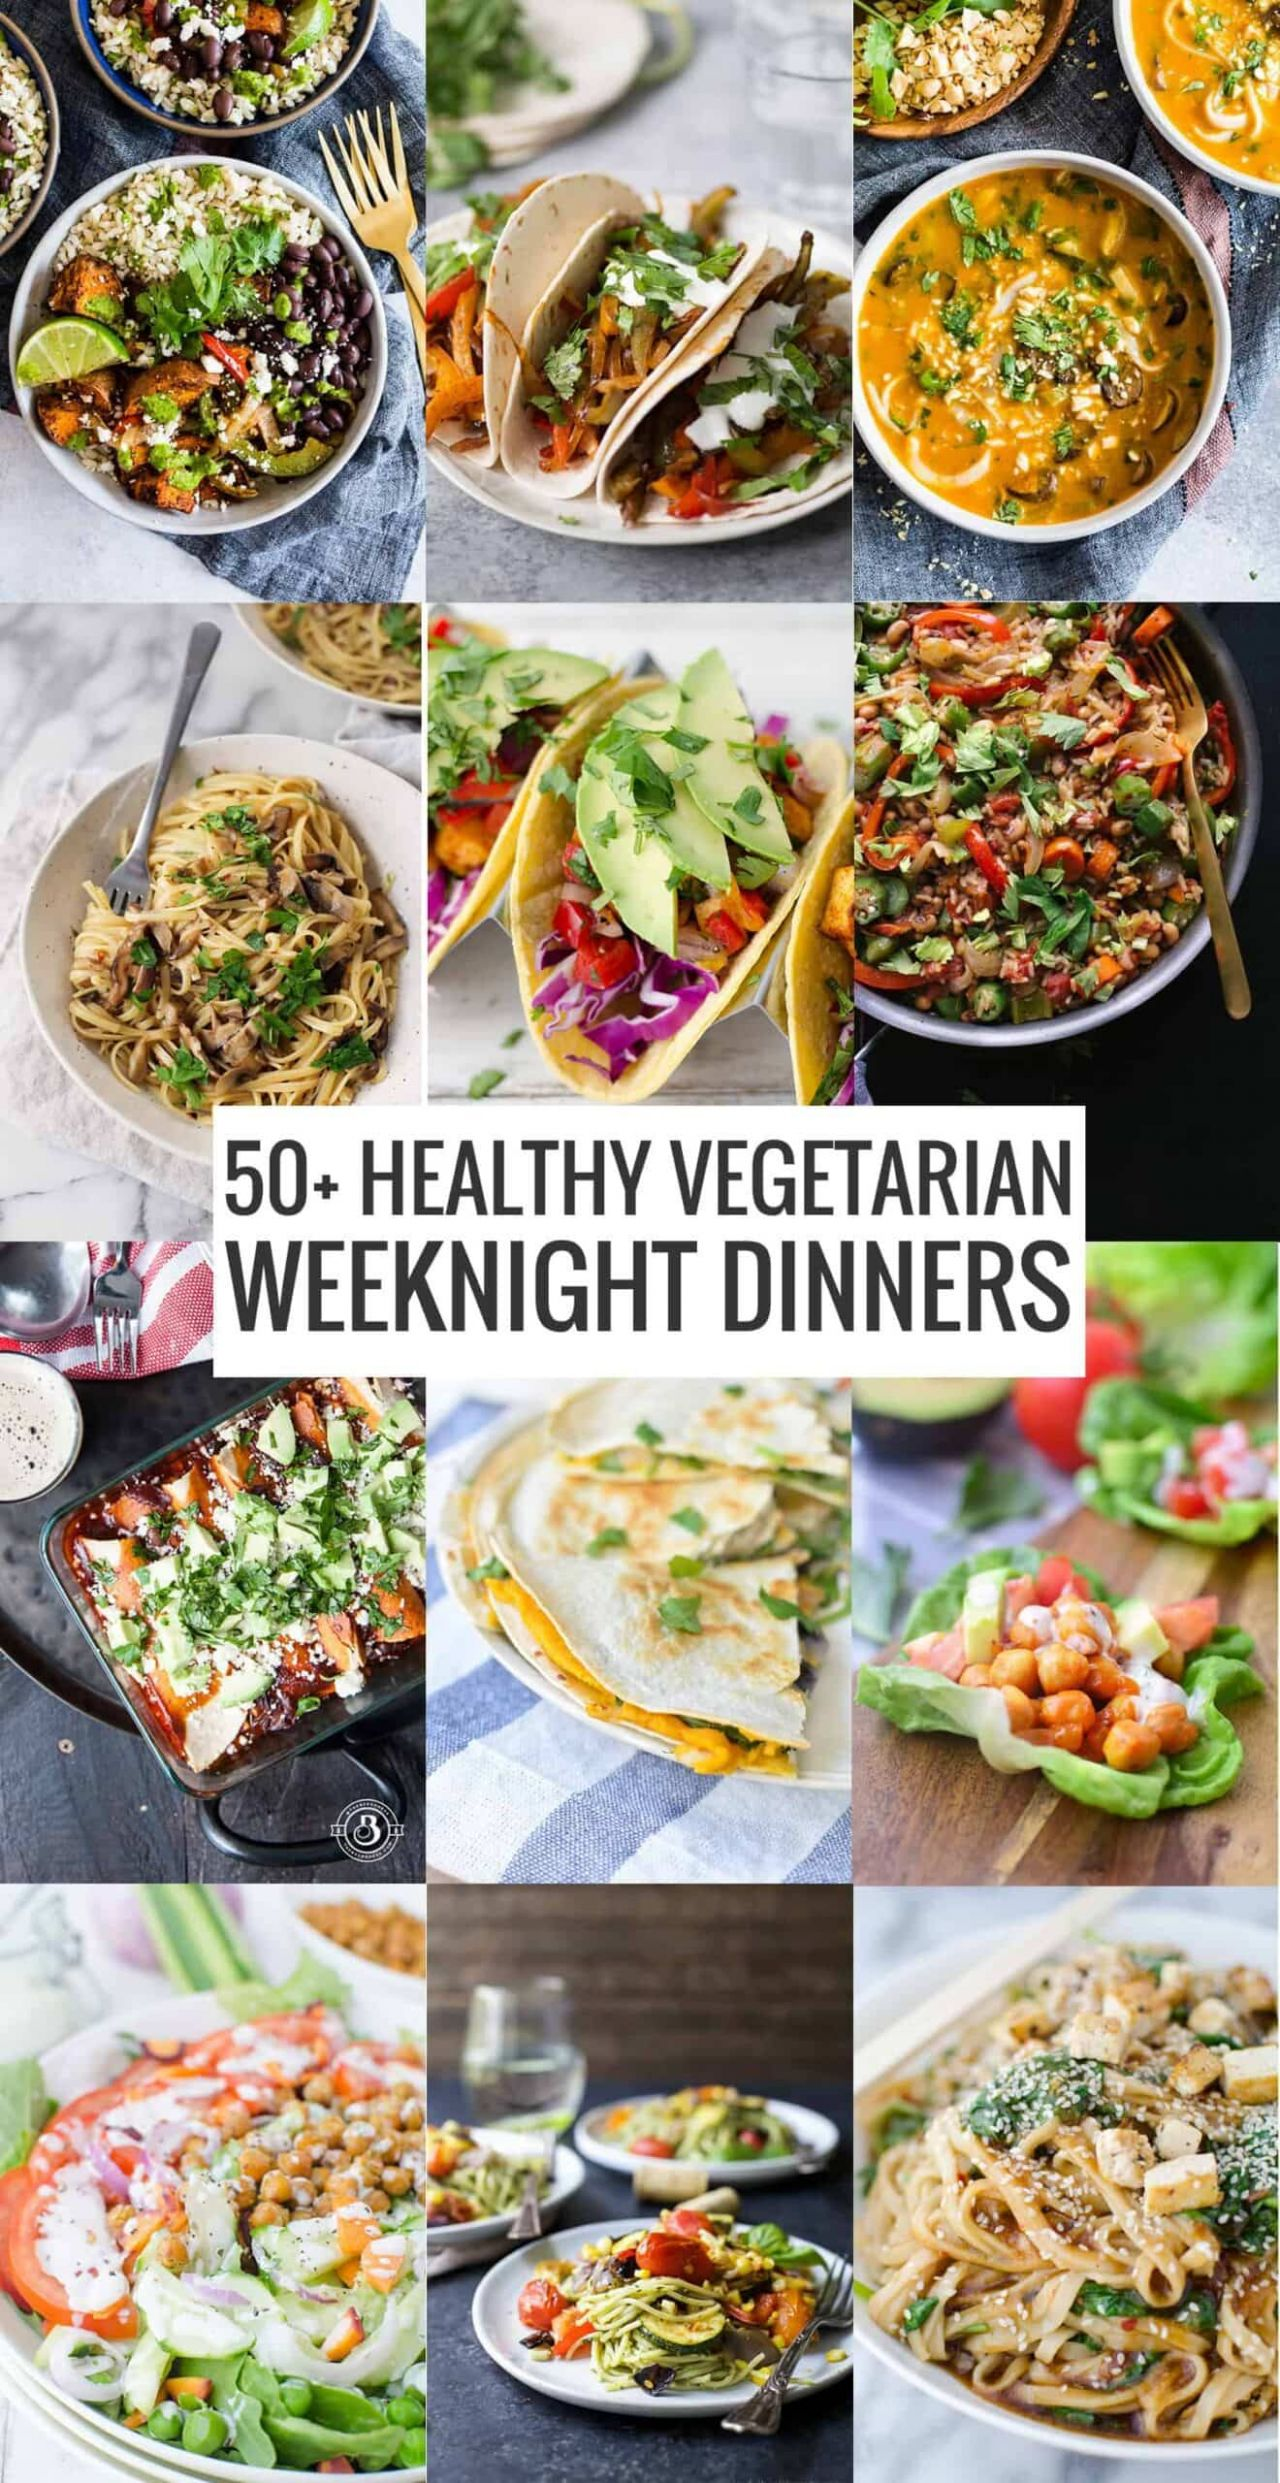 10+ Healthy Vegetarian Meals - Delish Knowledge - Dinner Recipes Healthy Vegetarian